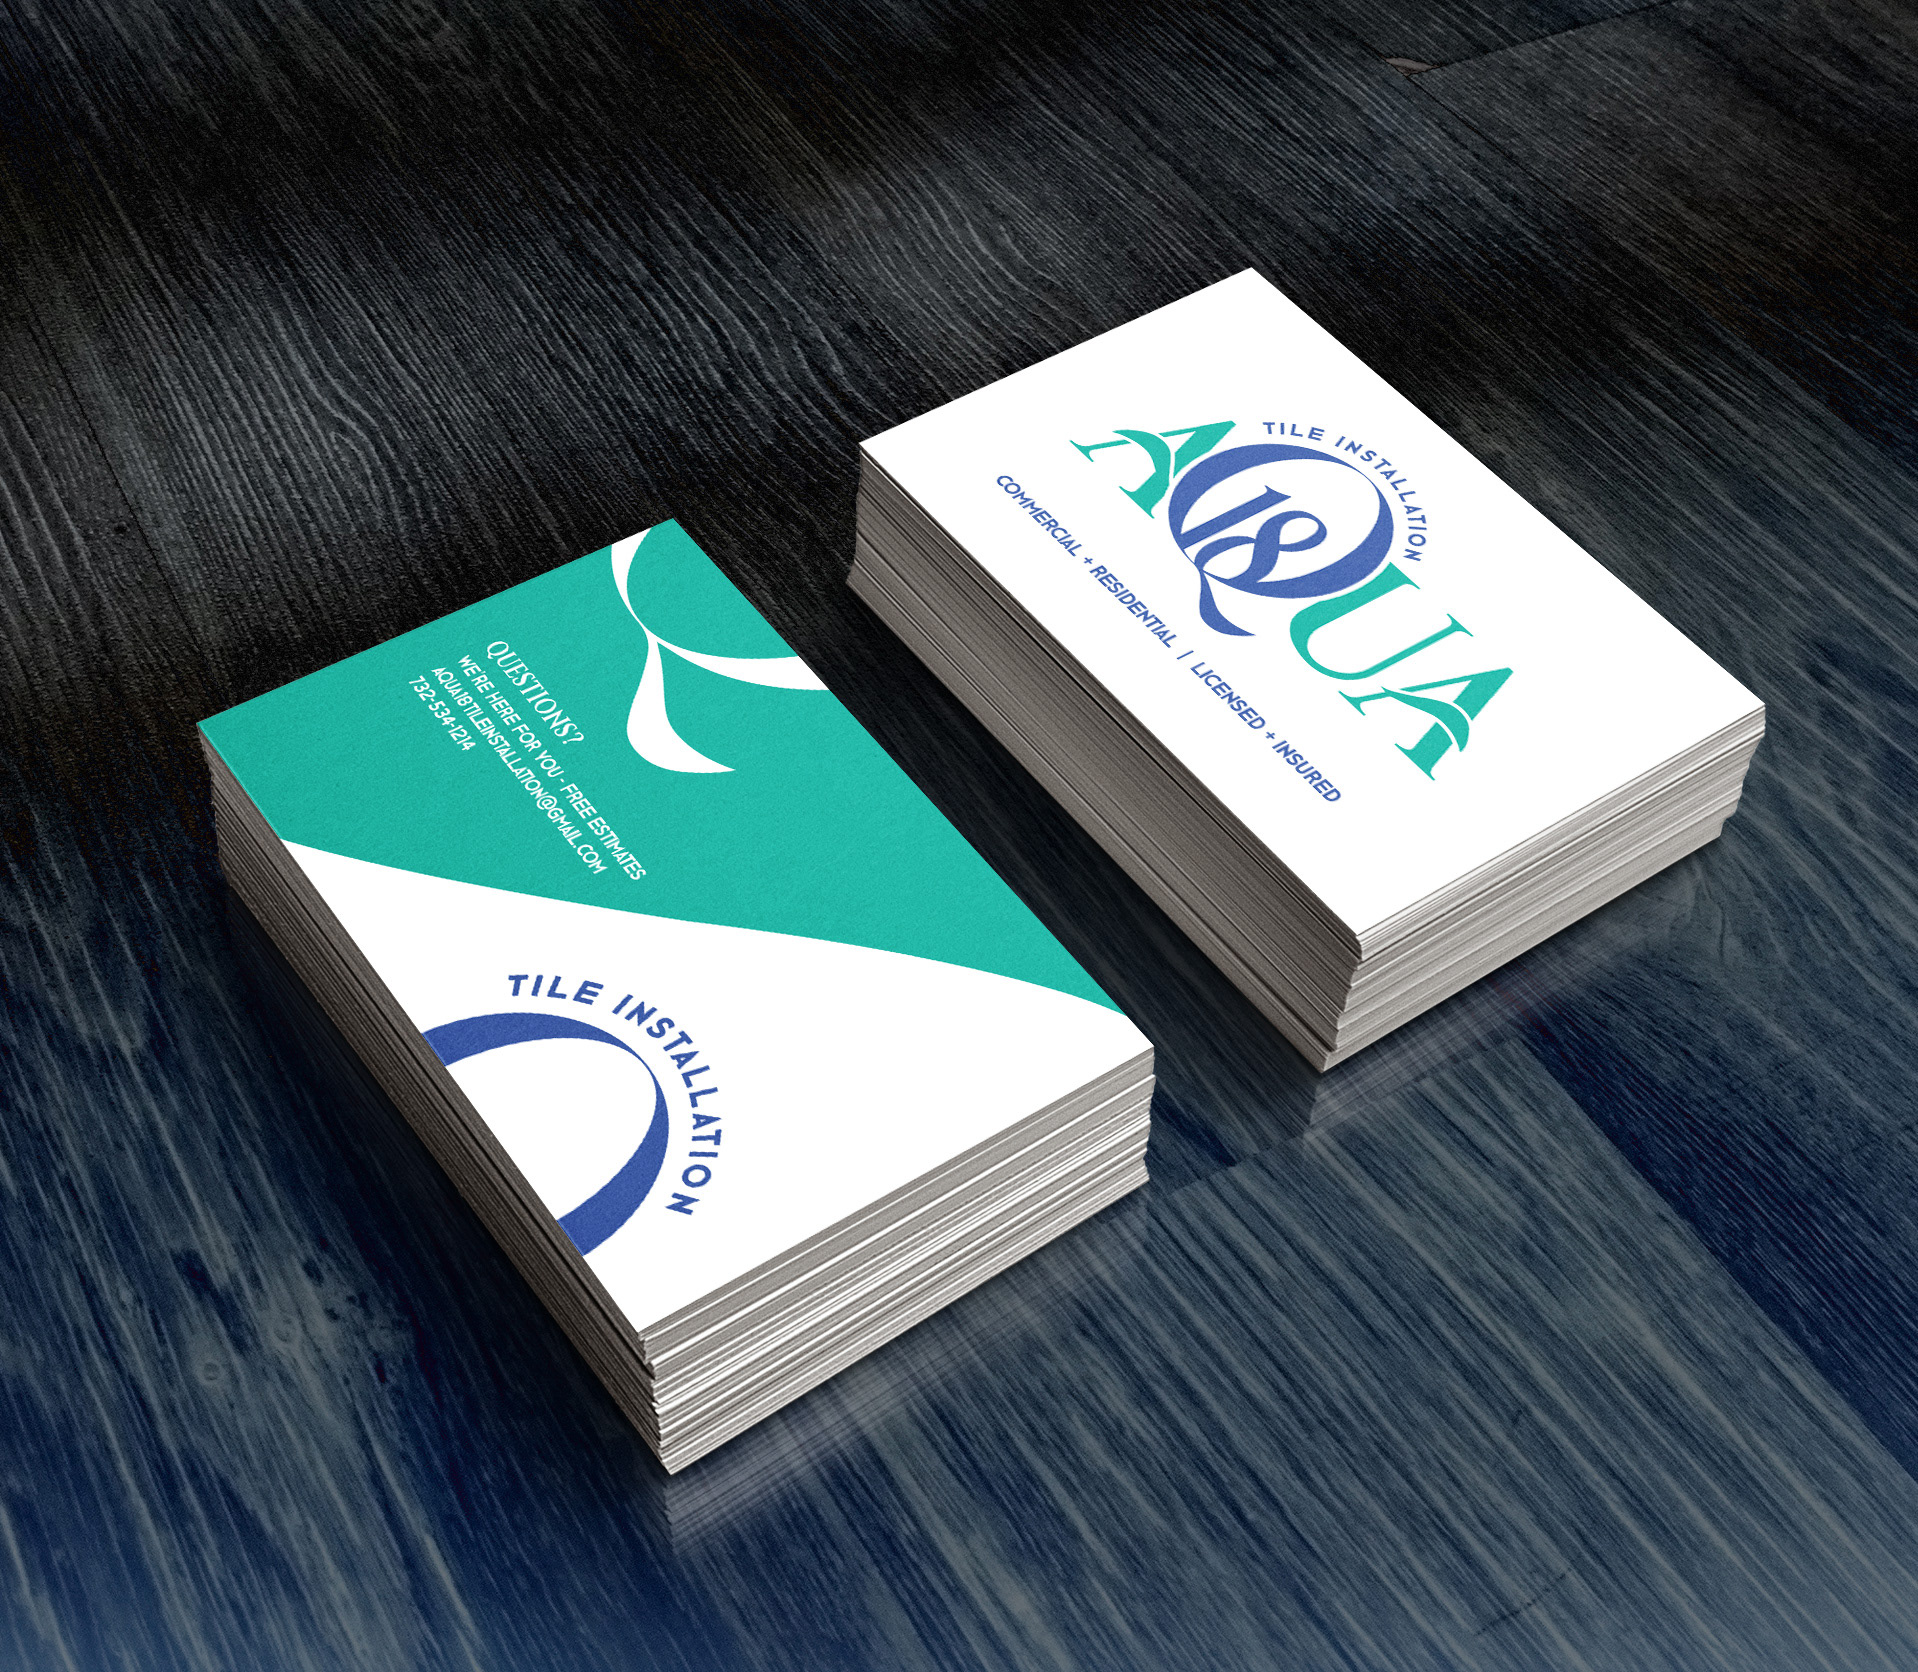 Thinkink creations aqua logo and business card aqua logo and business card colourmoves Images